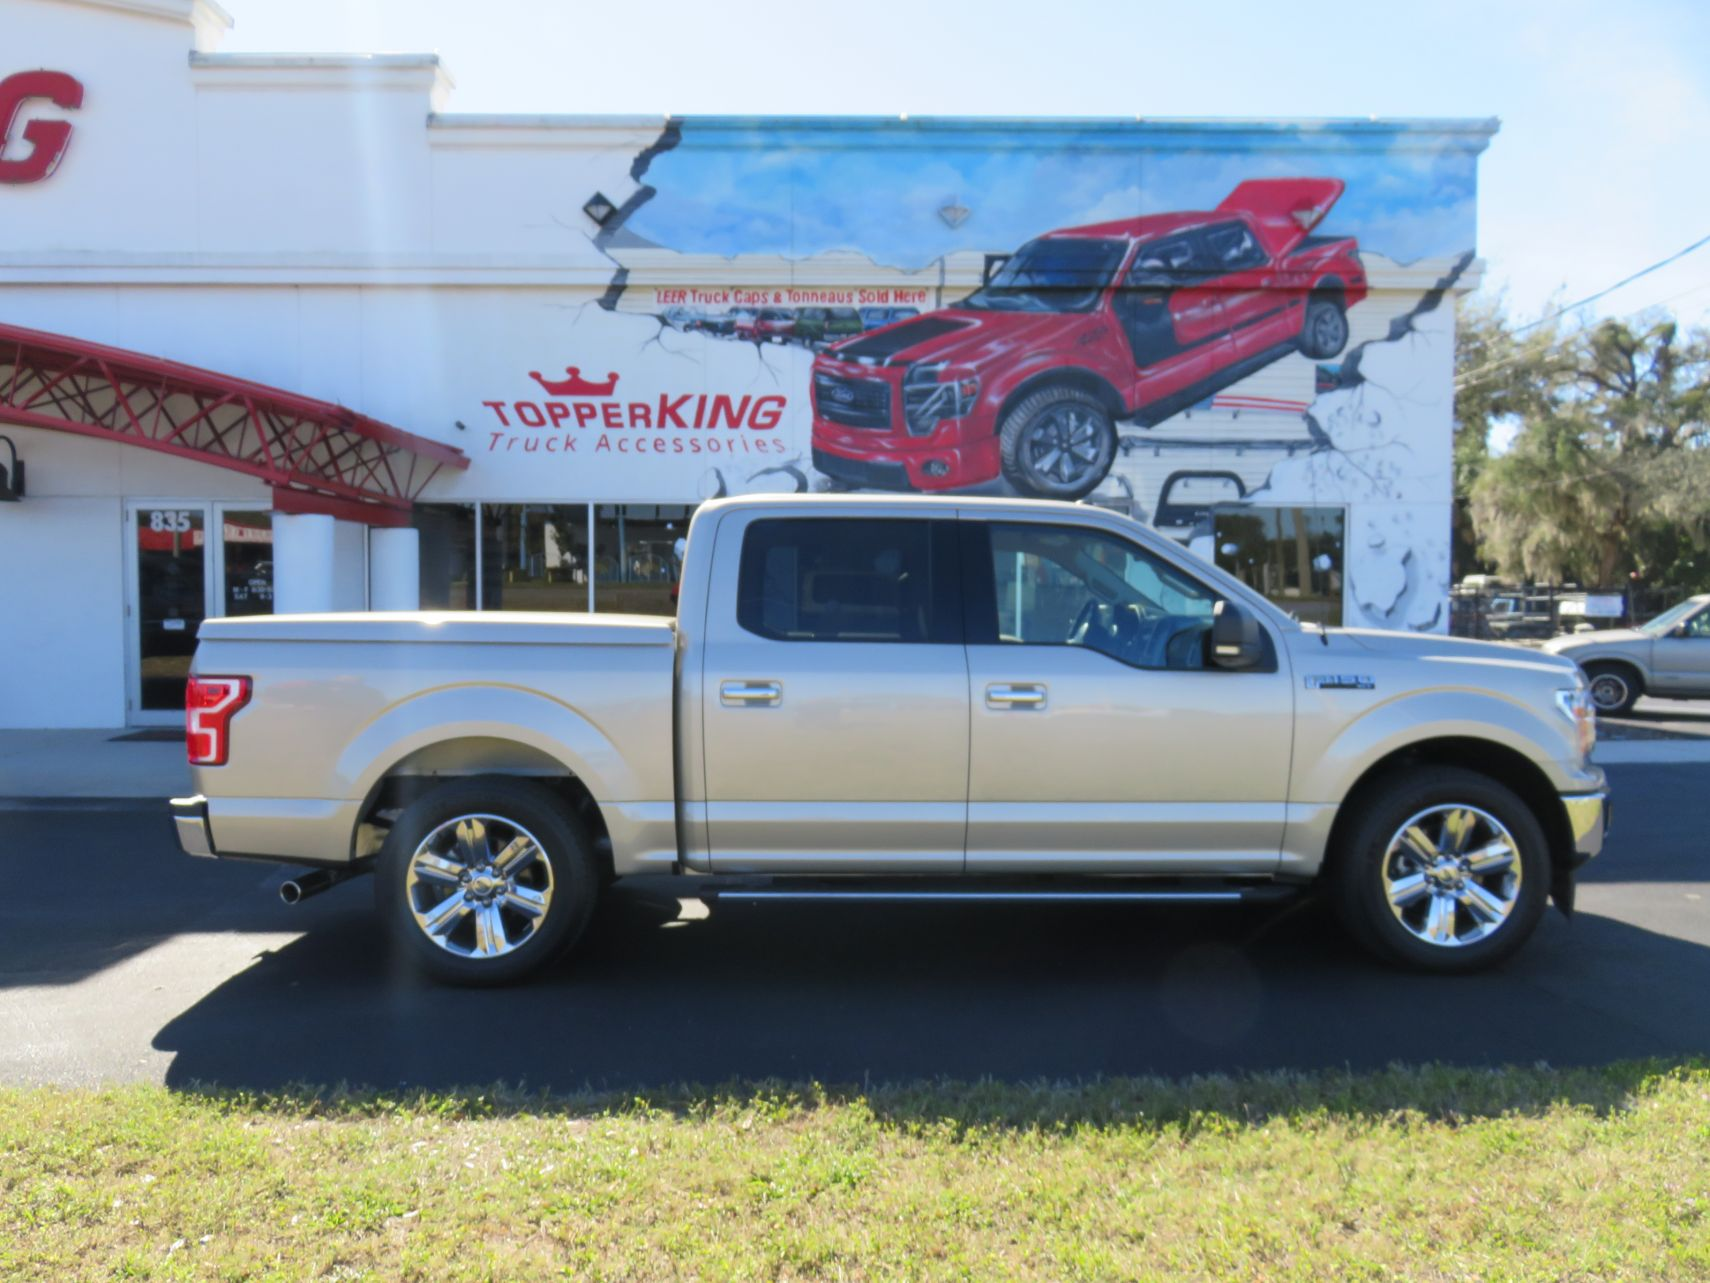 2019 Gold Ford F150 LEER 550, Tint, Nerf Bars, Bedliner, and Hitch by TopperKING in Brandon, FL 813-689-2449 or Clearwater, FL 727-530-9066. Call today!